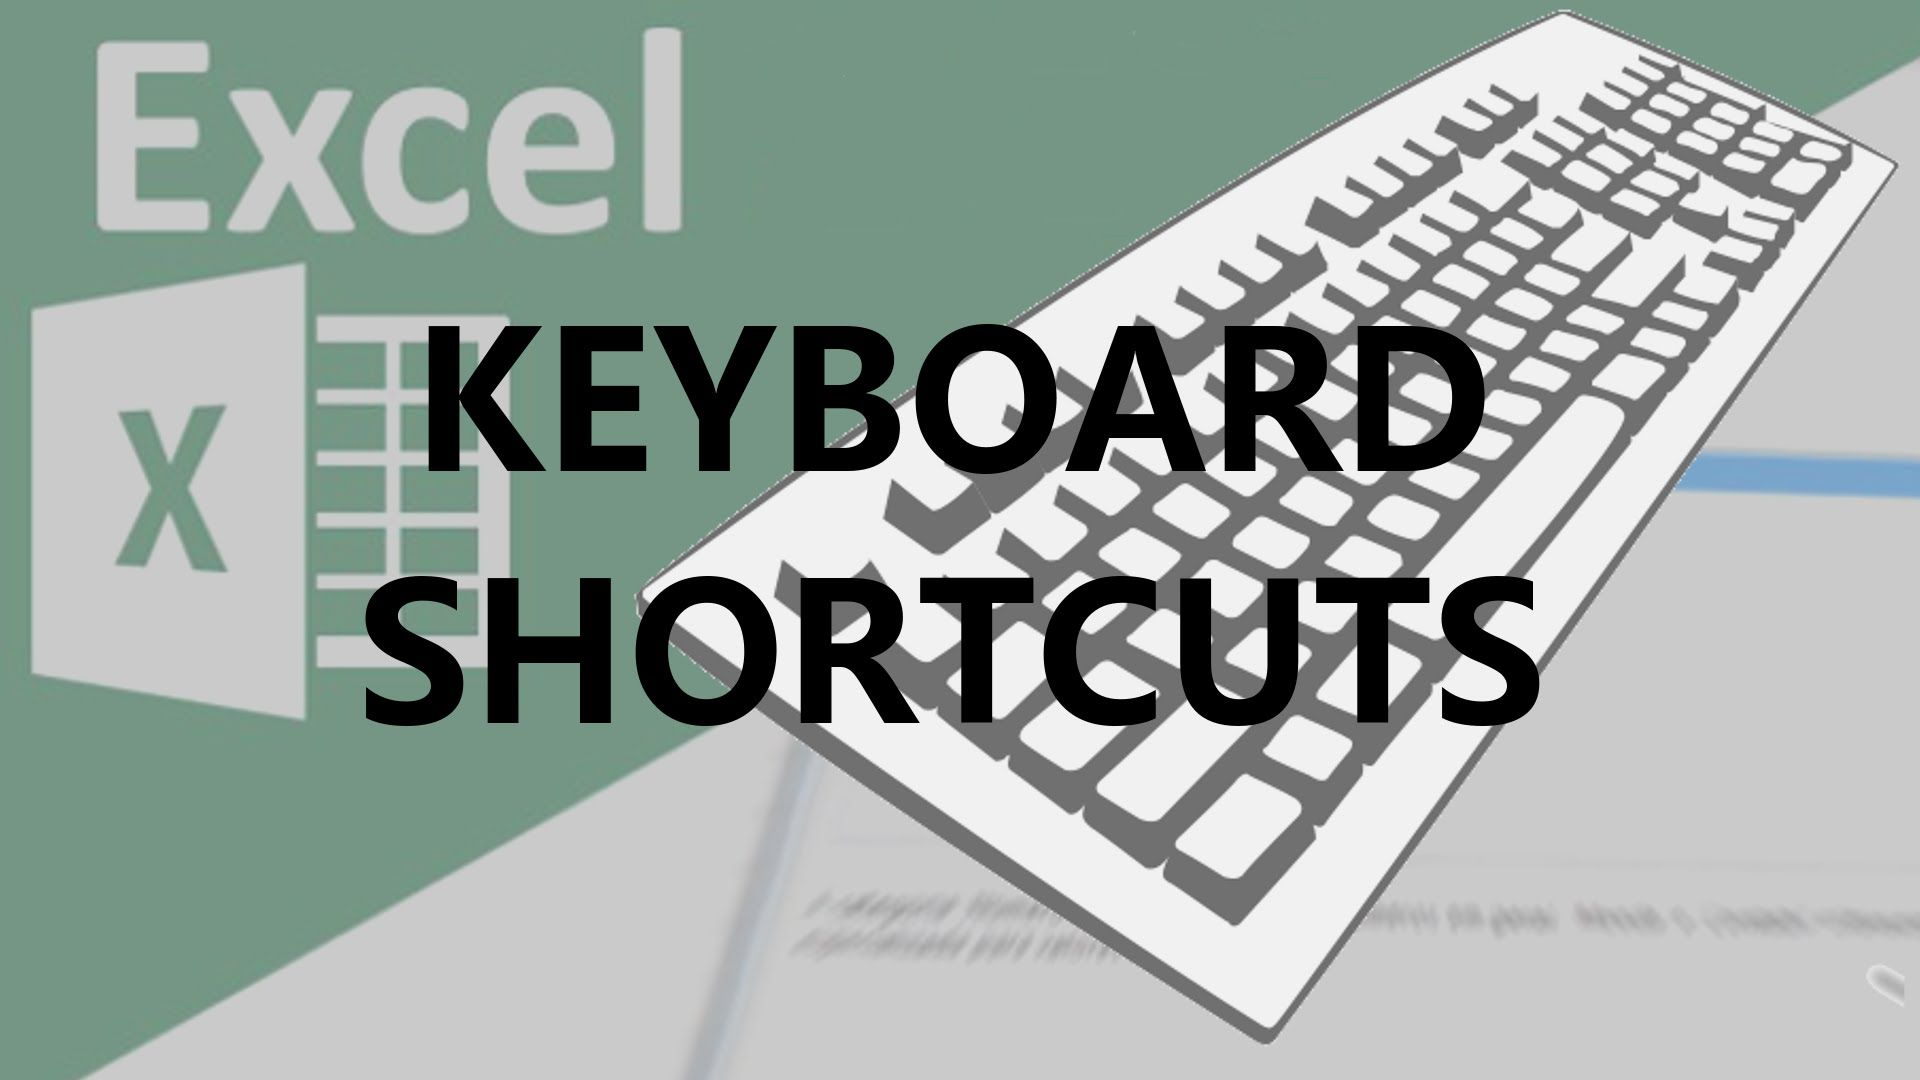 Excel Keyboard Shortcuts Basics